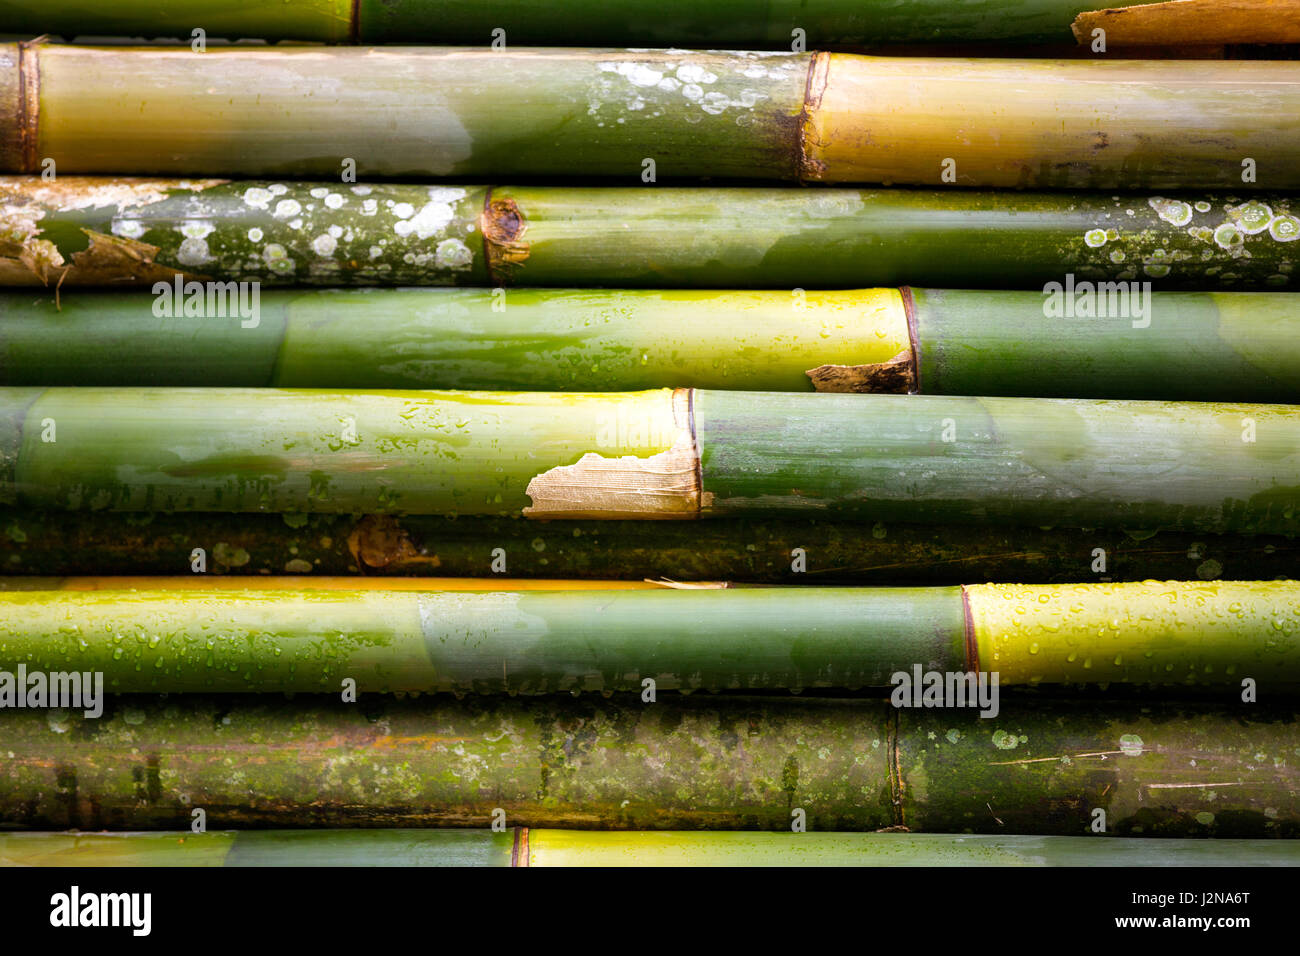 Green bamboo wall texture Stock Photo: 139381280 - Alamy